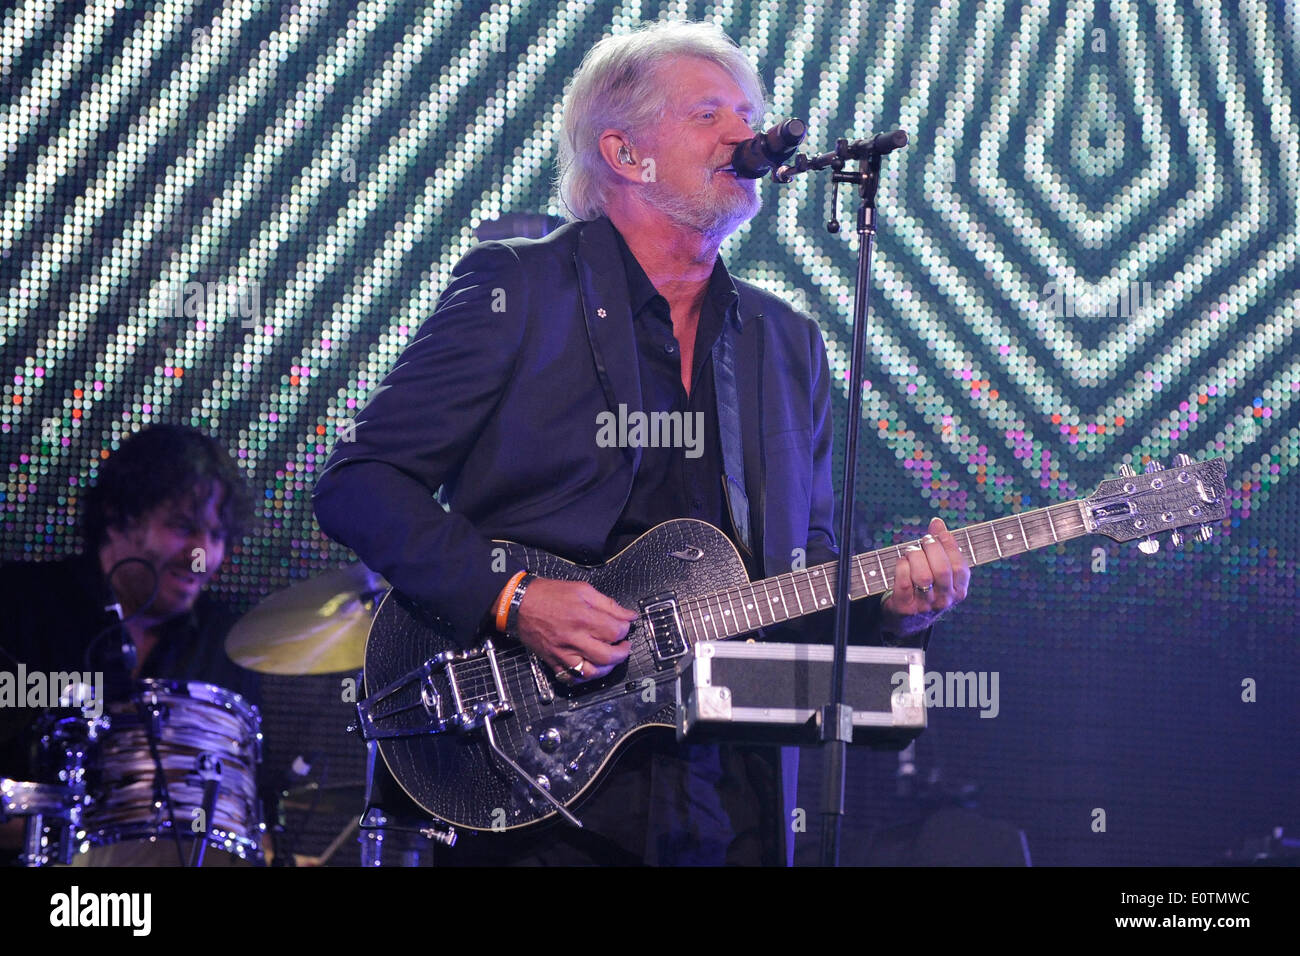 Tom Cochrane performs at the Canadian Music and Broadcast Industry Awards during the 2014 Canadian Music Week in Toronto. - Stock Image